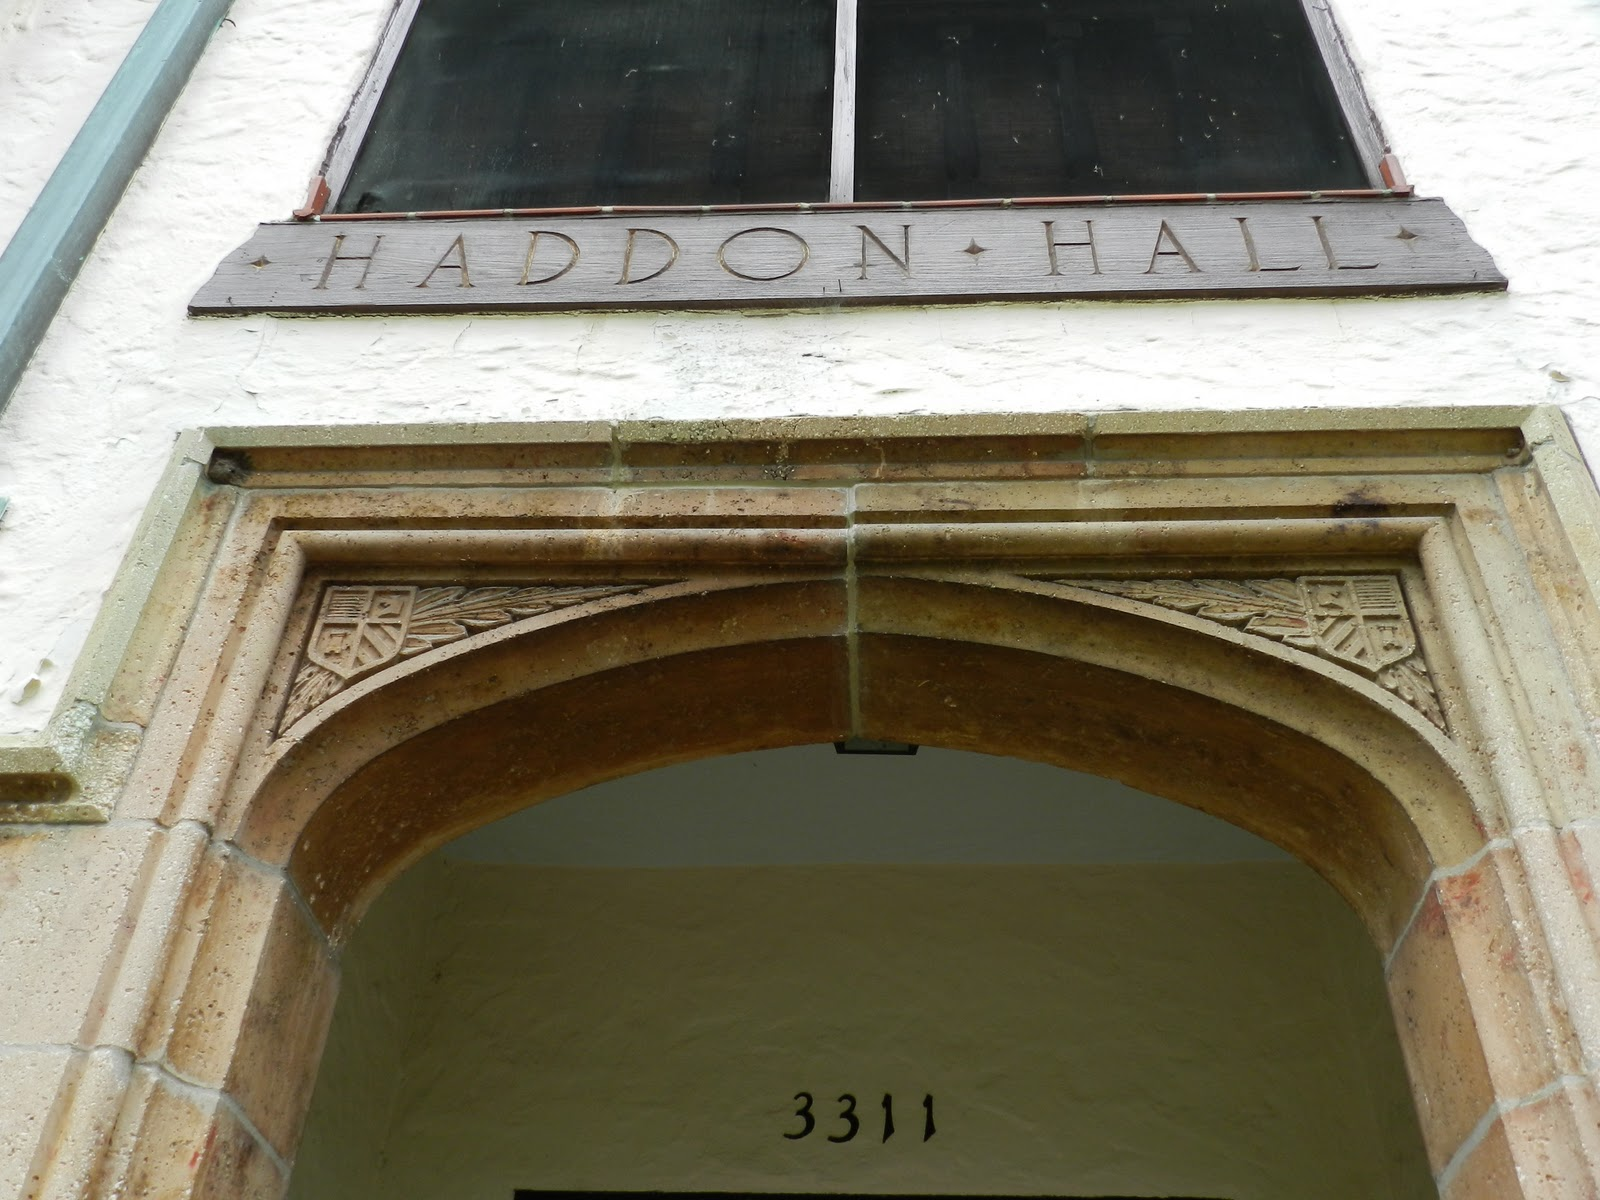 Mike\'s Historic Buildings: Haddon Hall Apartments